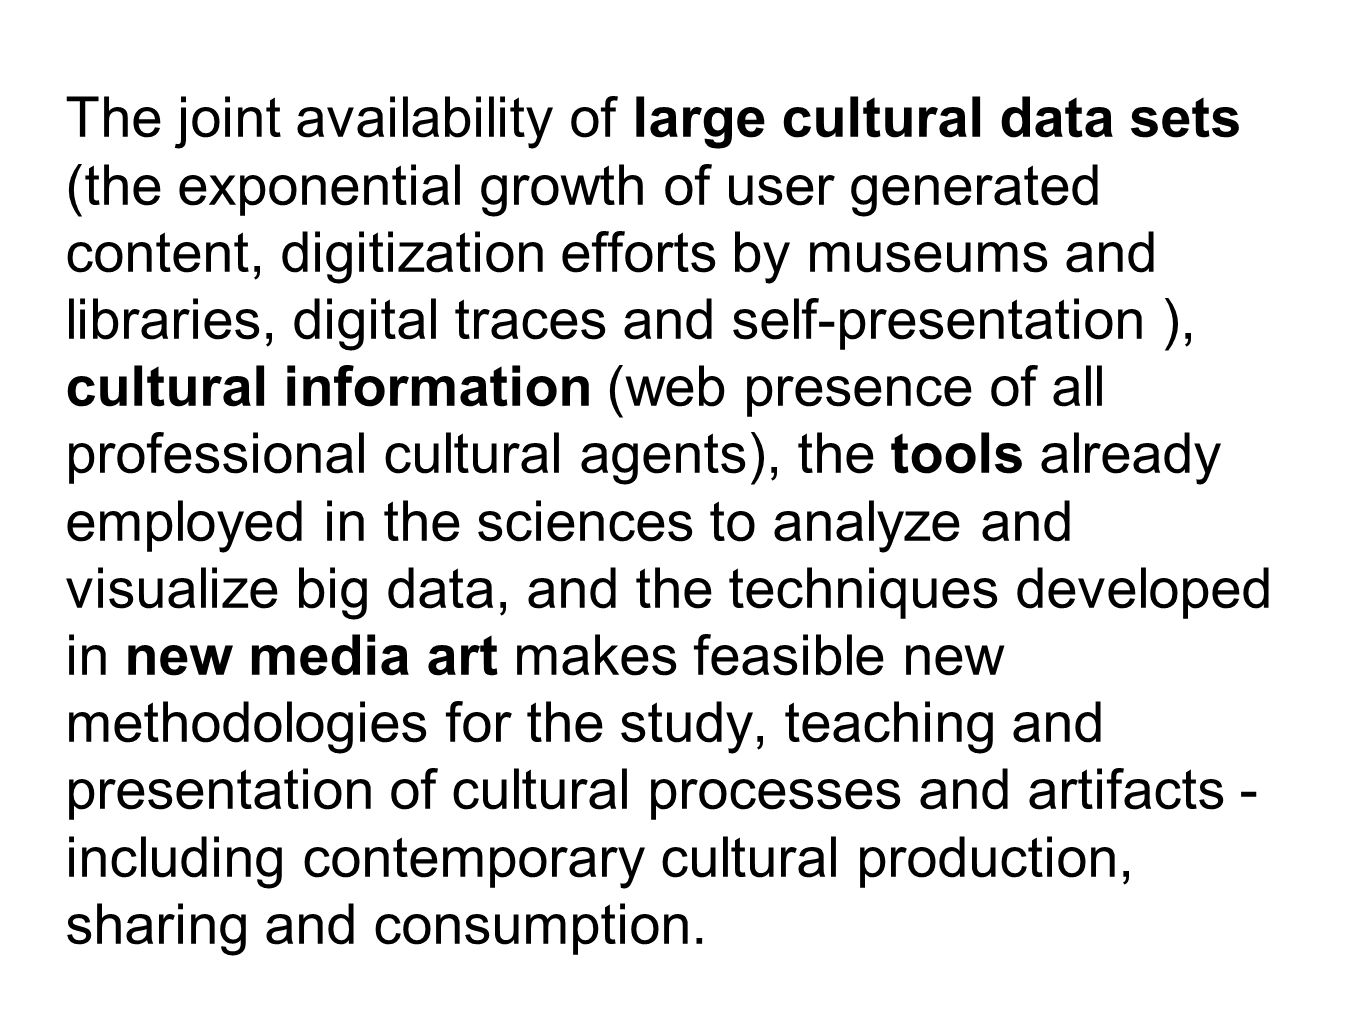 The joint availability of large cultural data sets (the exponential growth of user generated content, digitization efforts by museums and libraries, digital traces and self-presentation ), cultural information (web presence of all professional cultural agents), the tools already employed in the sciences to analyze and visualize big data, and the techniques developed in new media art makes feasible new methodologies for the study, teaching and presentation of cultural processes and artifacts - including contemporary cultural production, sharing and consumption.